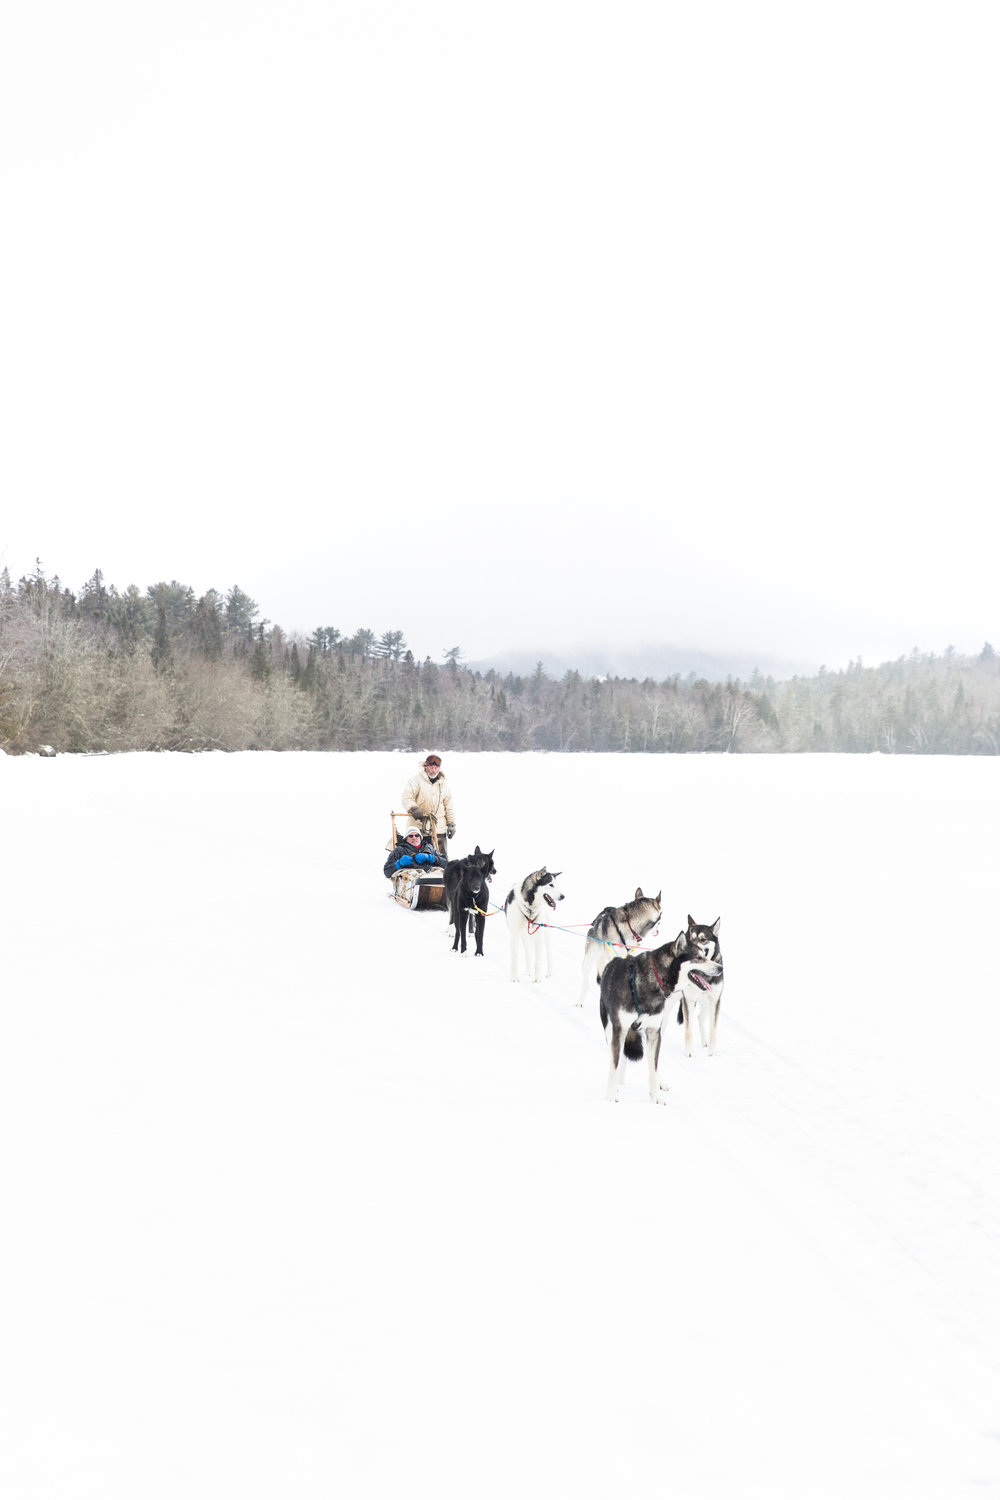 Dogsledding- Mahoosuc, Maine